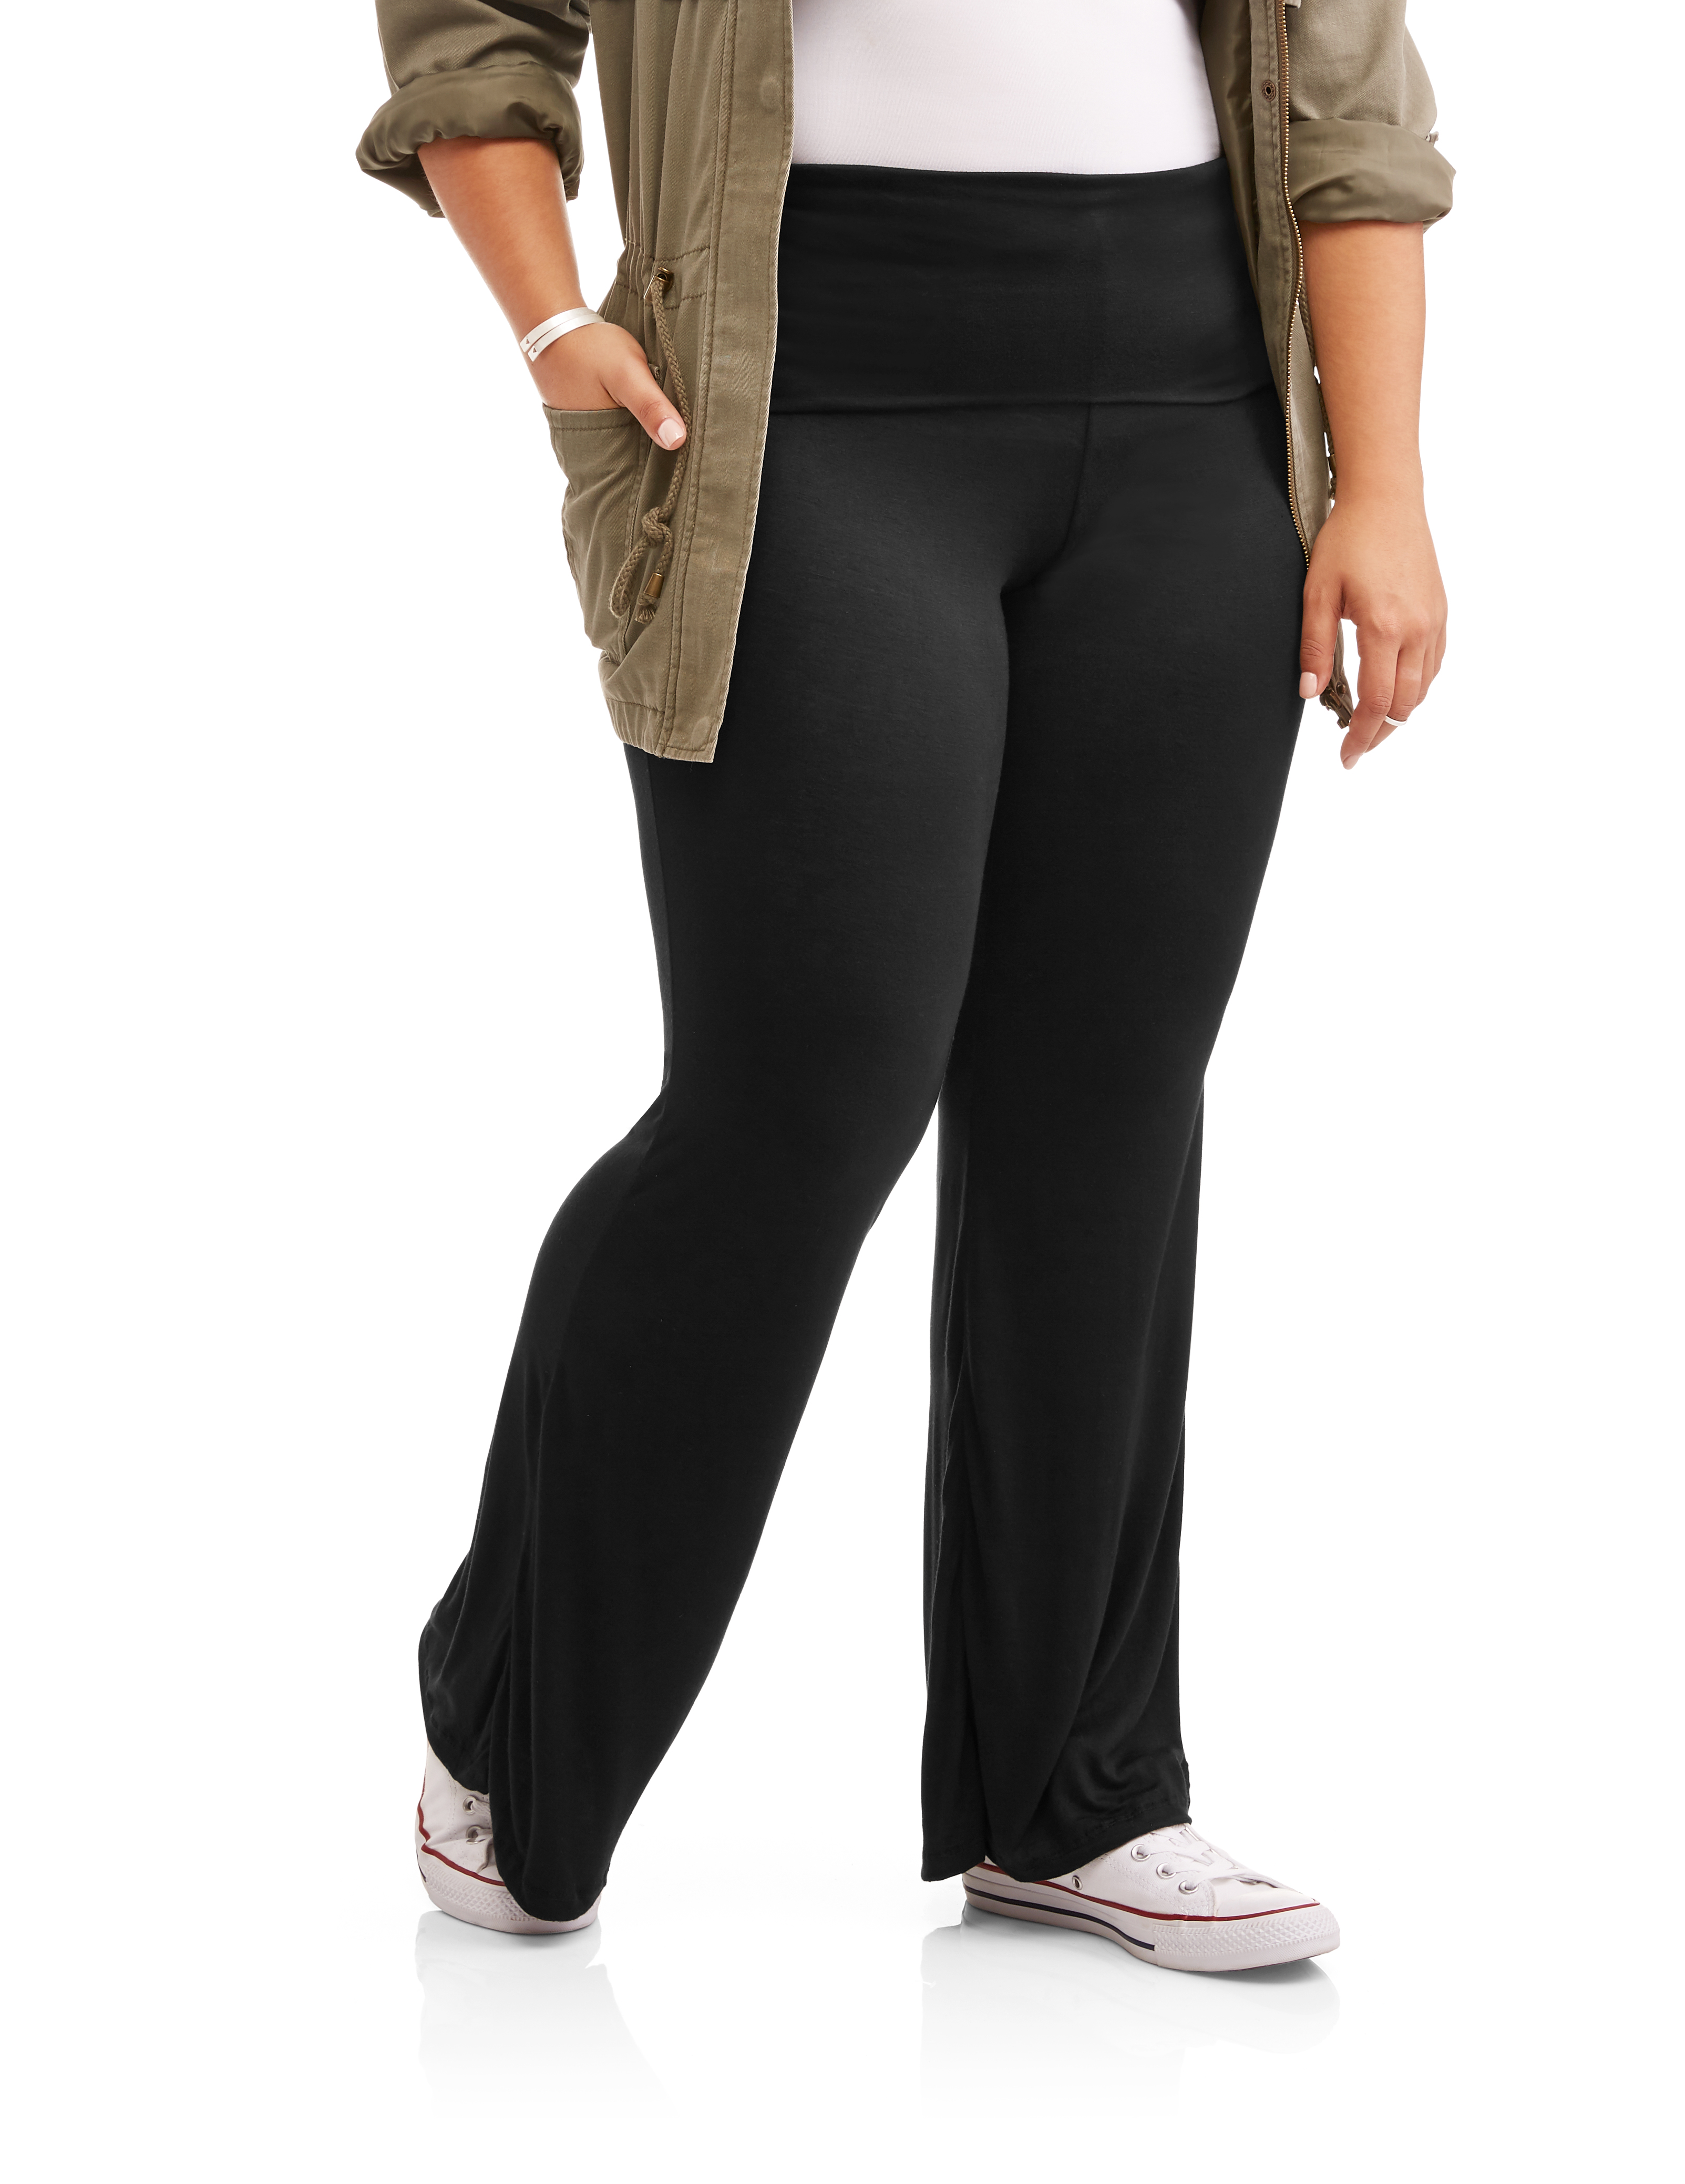 Eye Candy Juniors' Plus Knit Flared Pants With Foldover Waistband